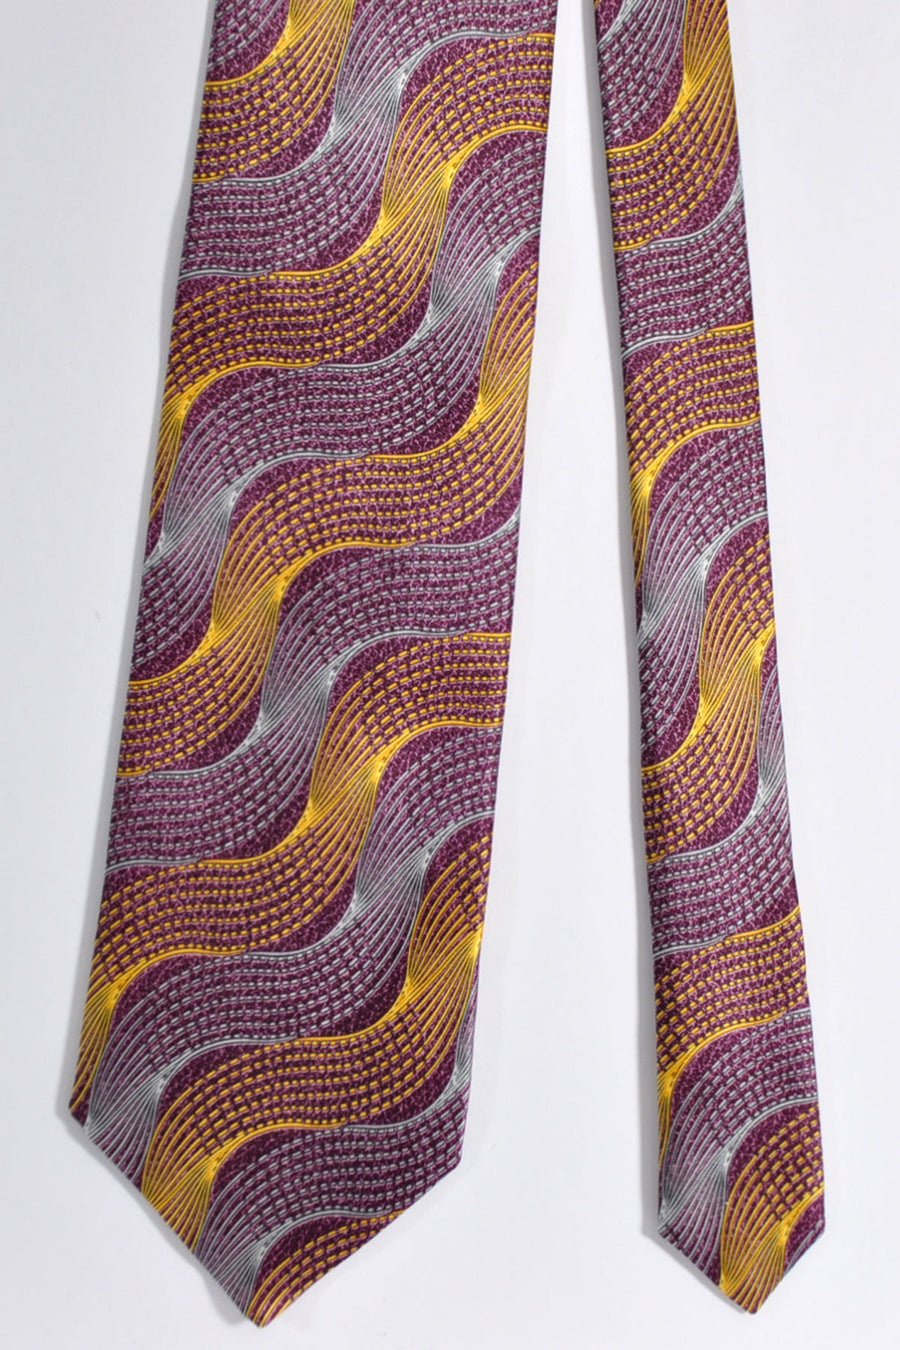 Zilli Tie & Pocket Square Set Purple Gold Gray Swirl